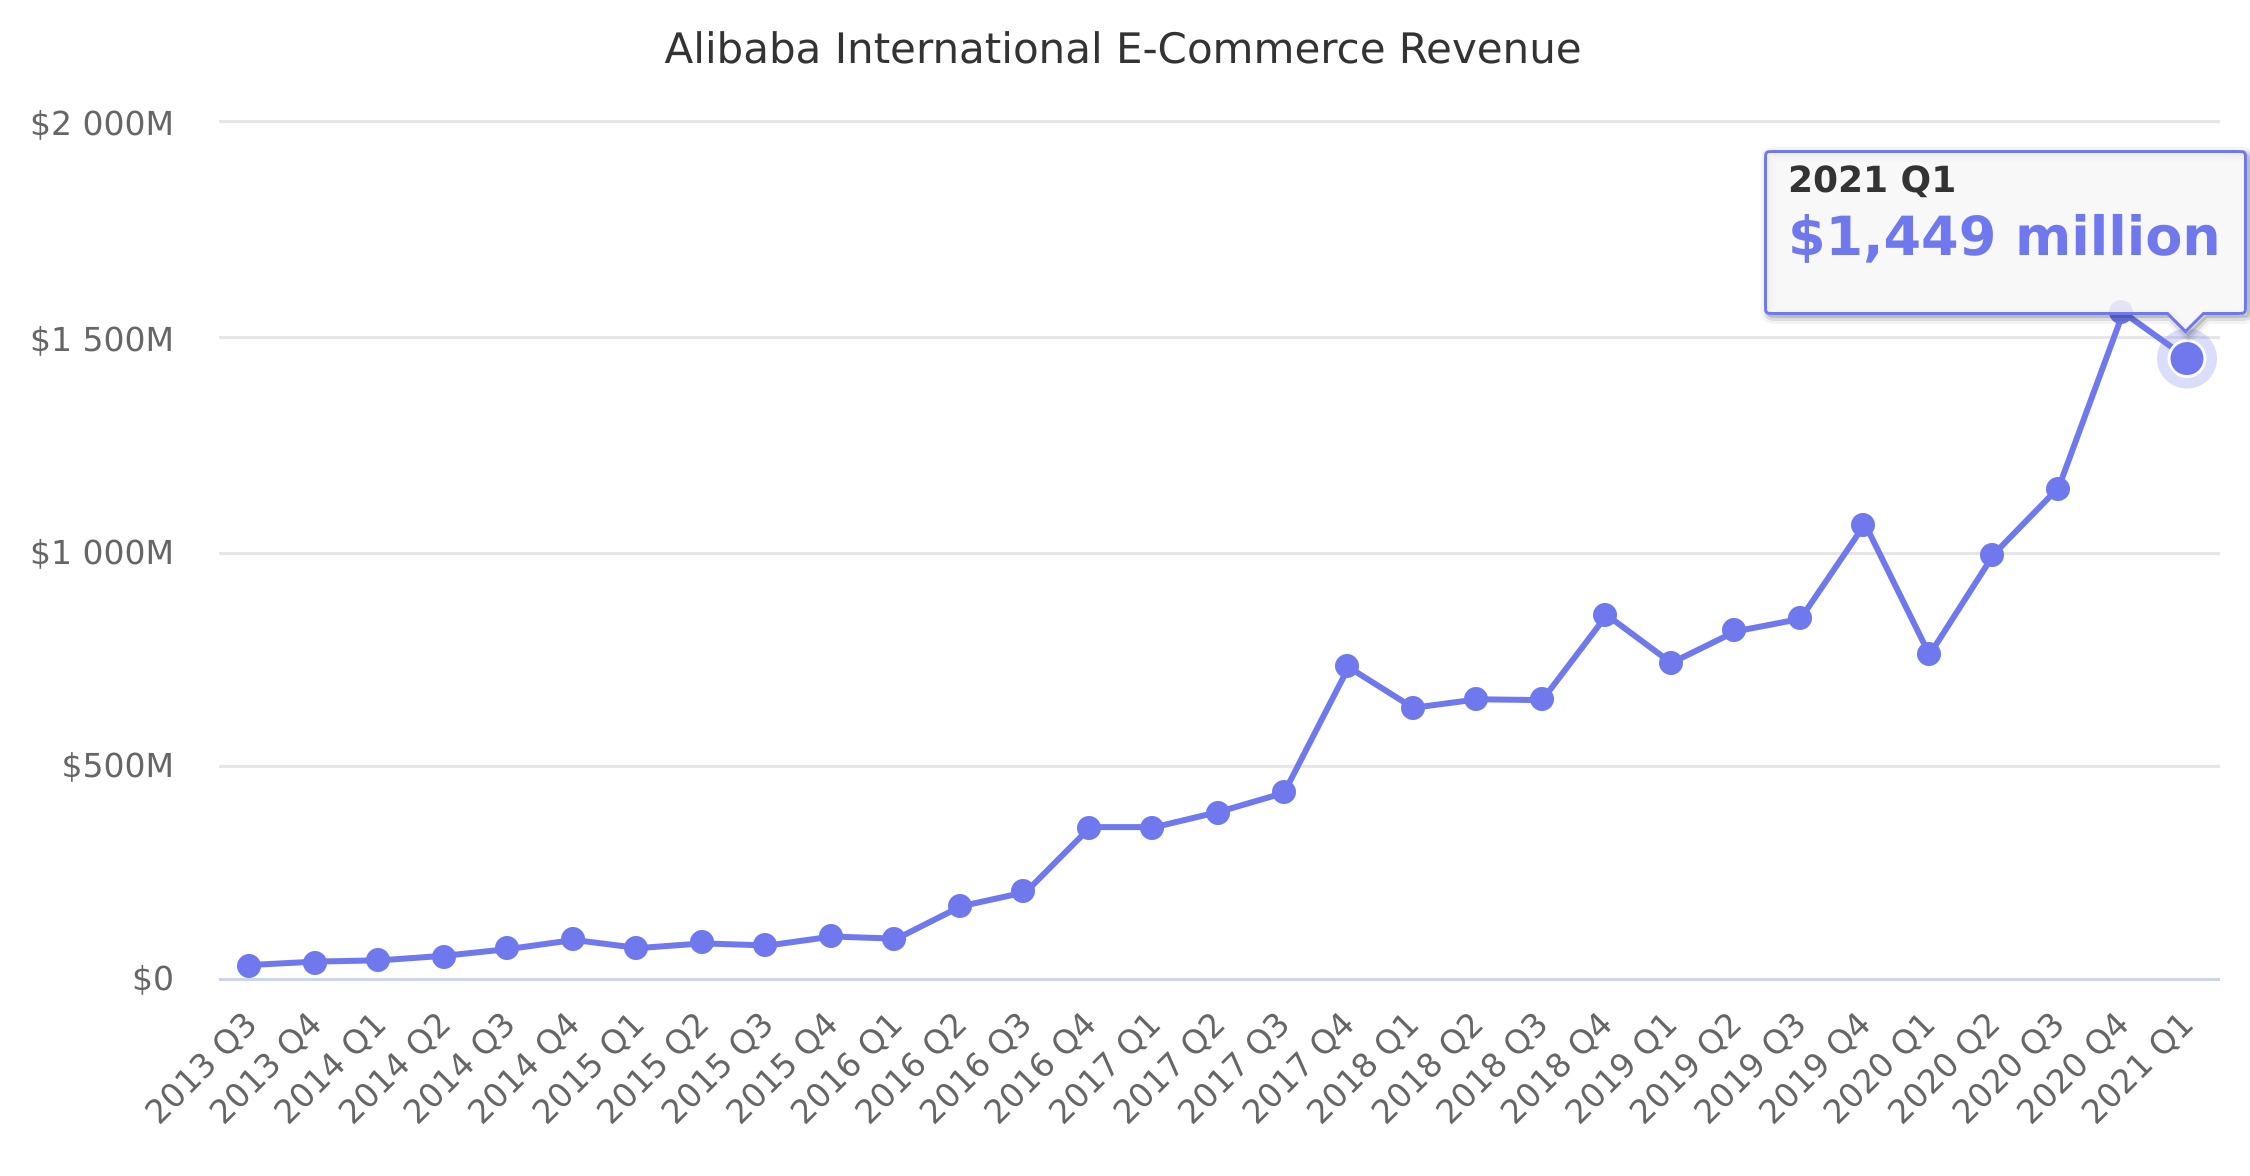 Alibaba International E-Commerce Revenue 2013-2019